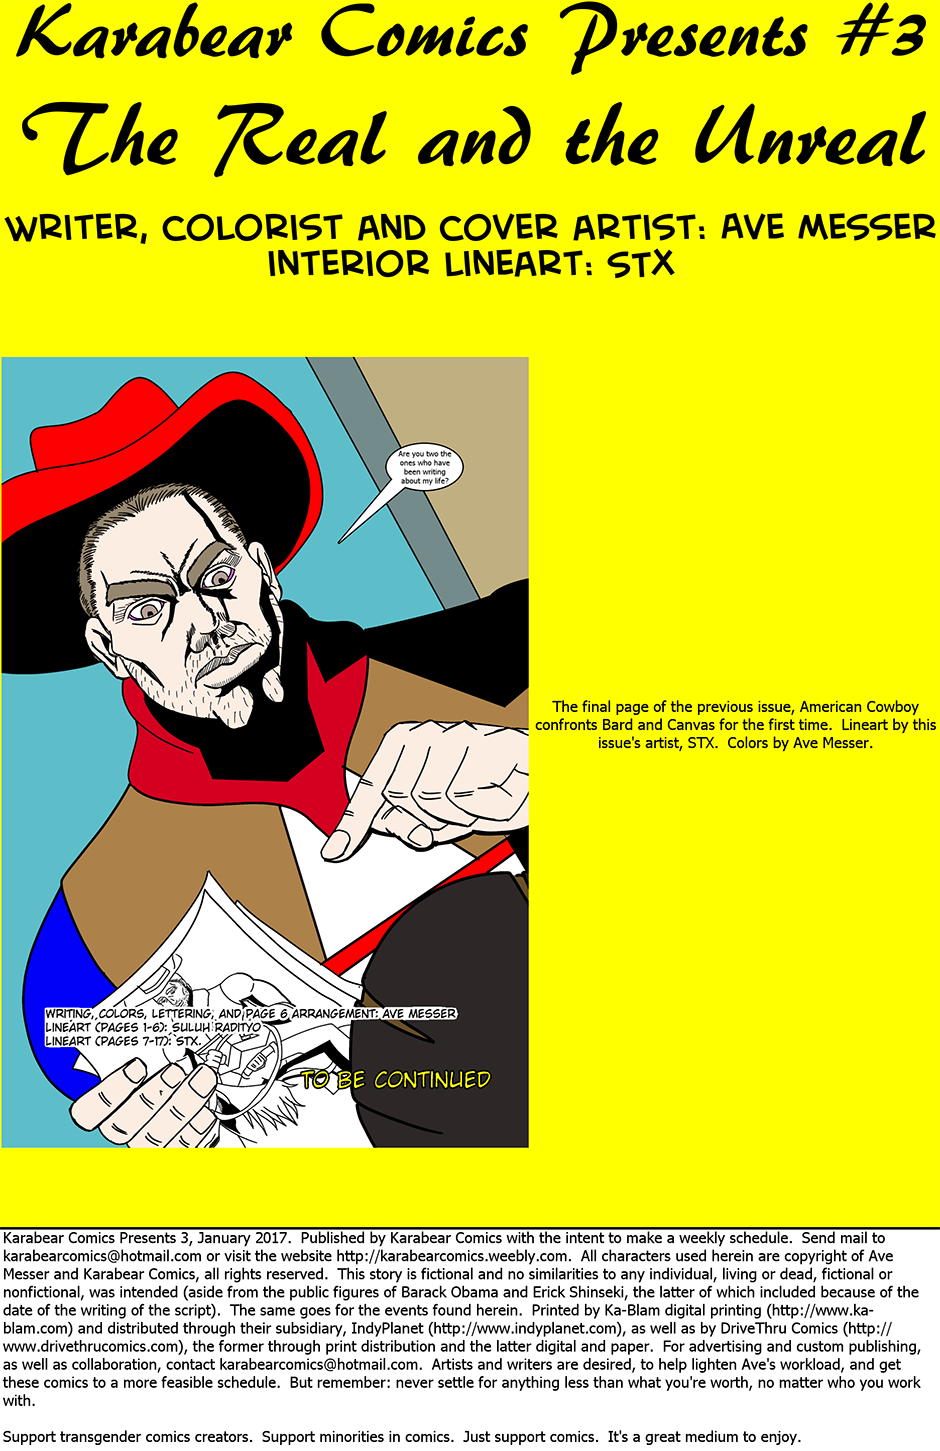 Issue 3: The Real and the Unreal - Inside cover